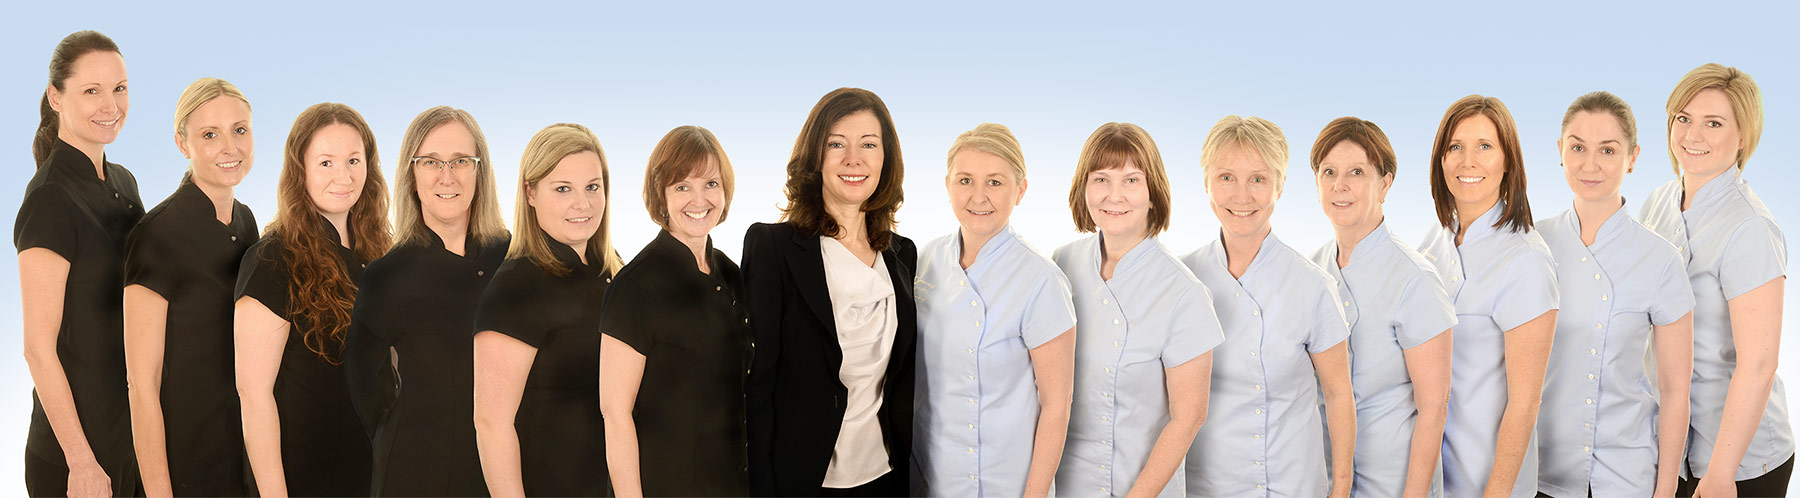 Dermatology Consulting Staff